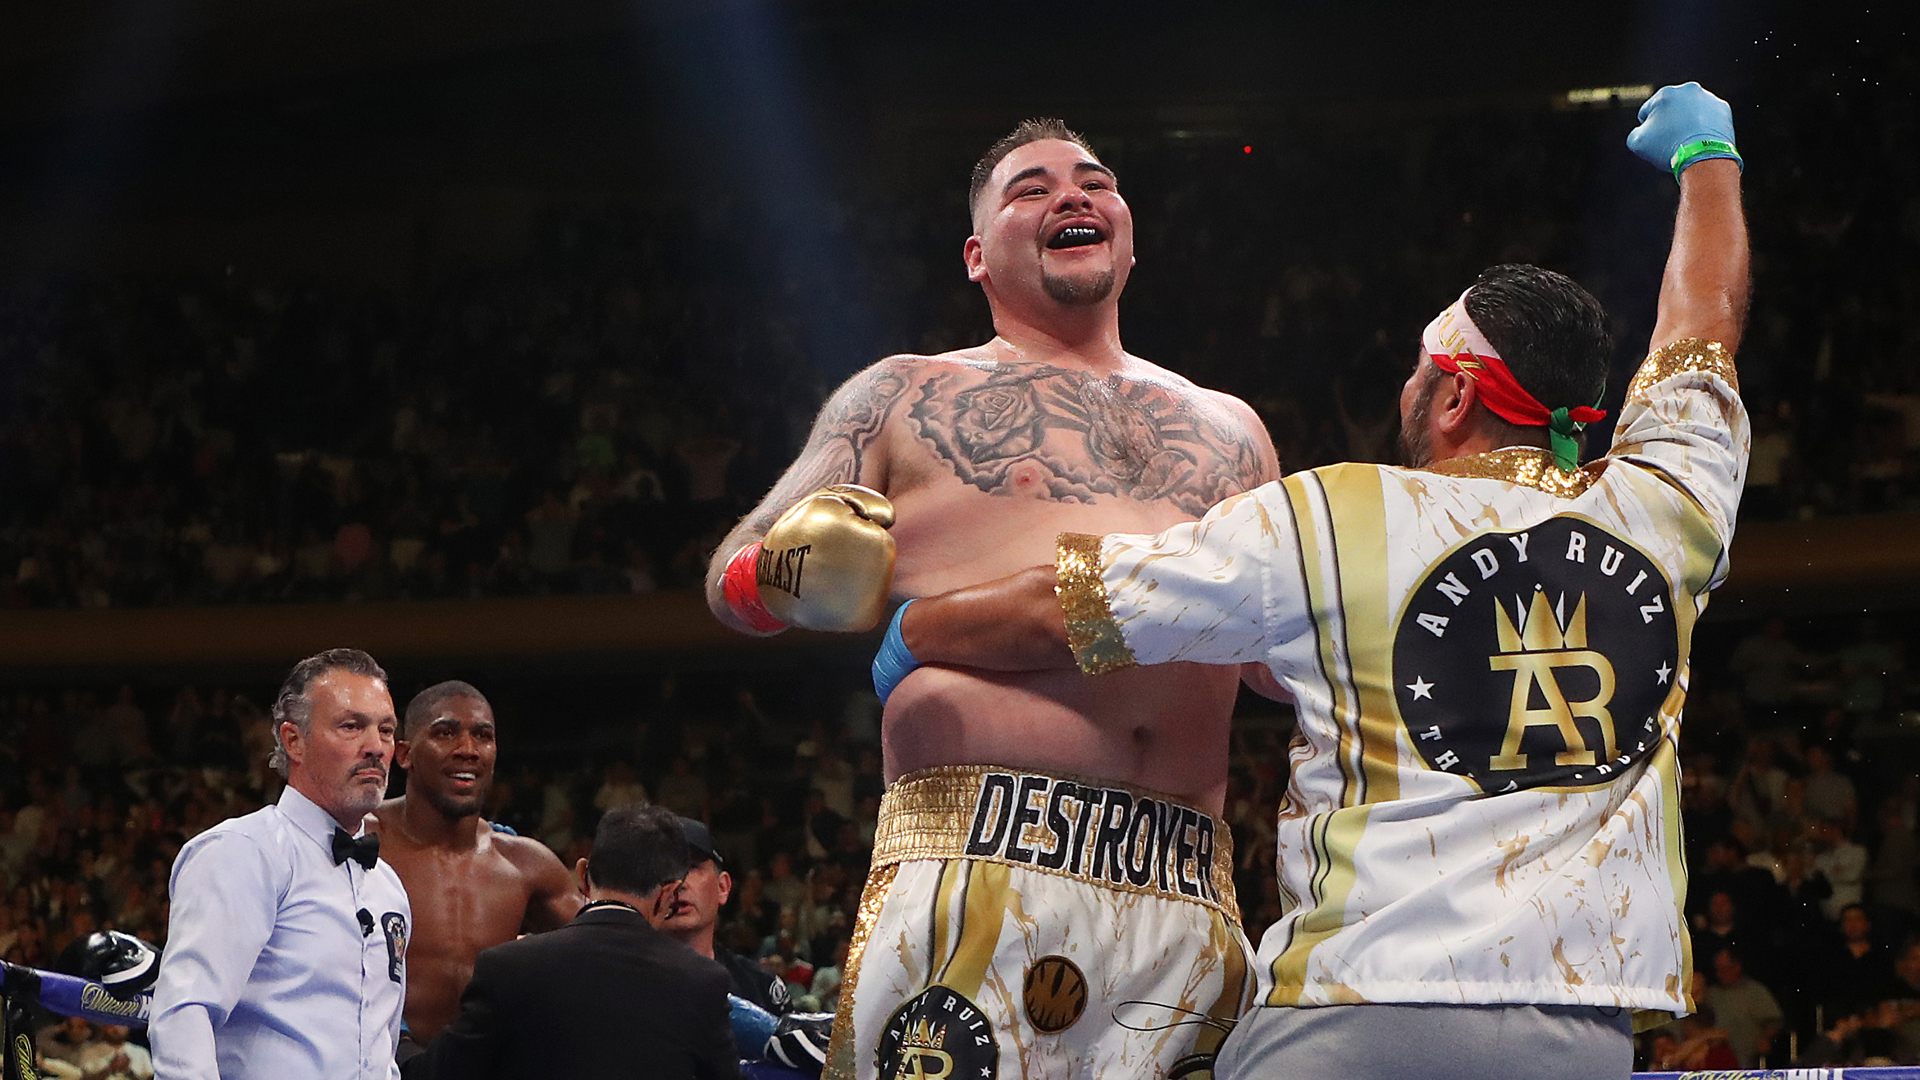 Andy Ruiz Jr. celebrates his seventh round TKO against Anthony Joshua after their IBF/WBA/WBO heavyweight title fight at Madison Square Garden on June 1, 2019 in New York City. (Credit: Al Bello/Getty Images)